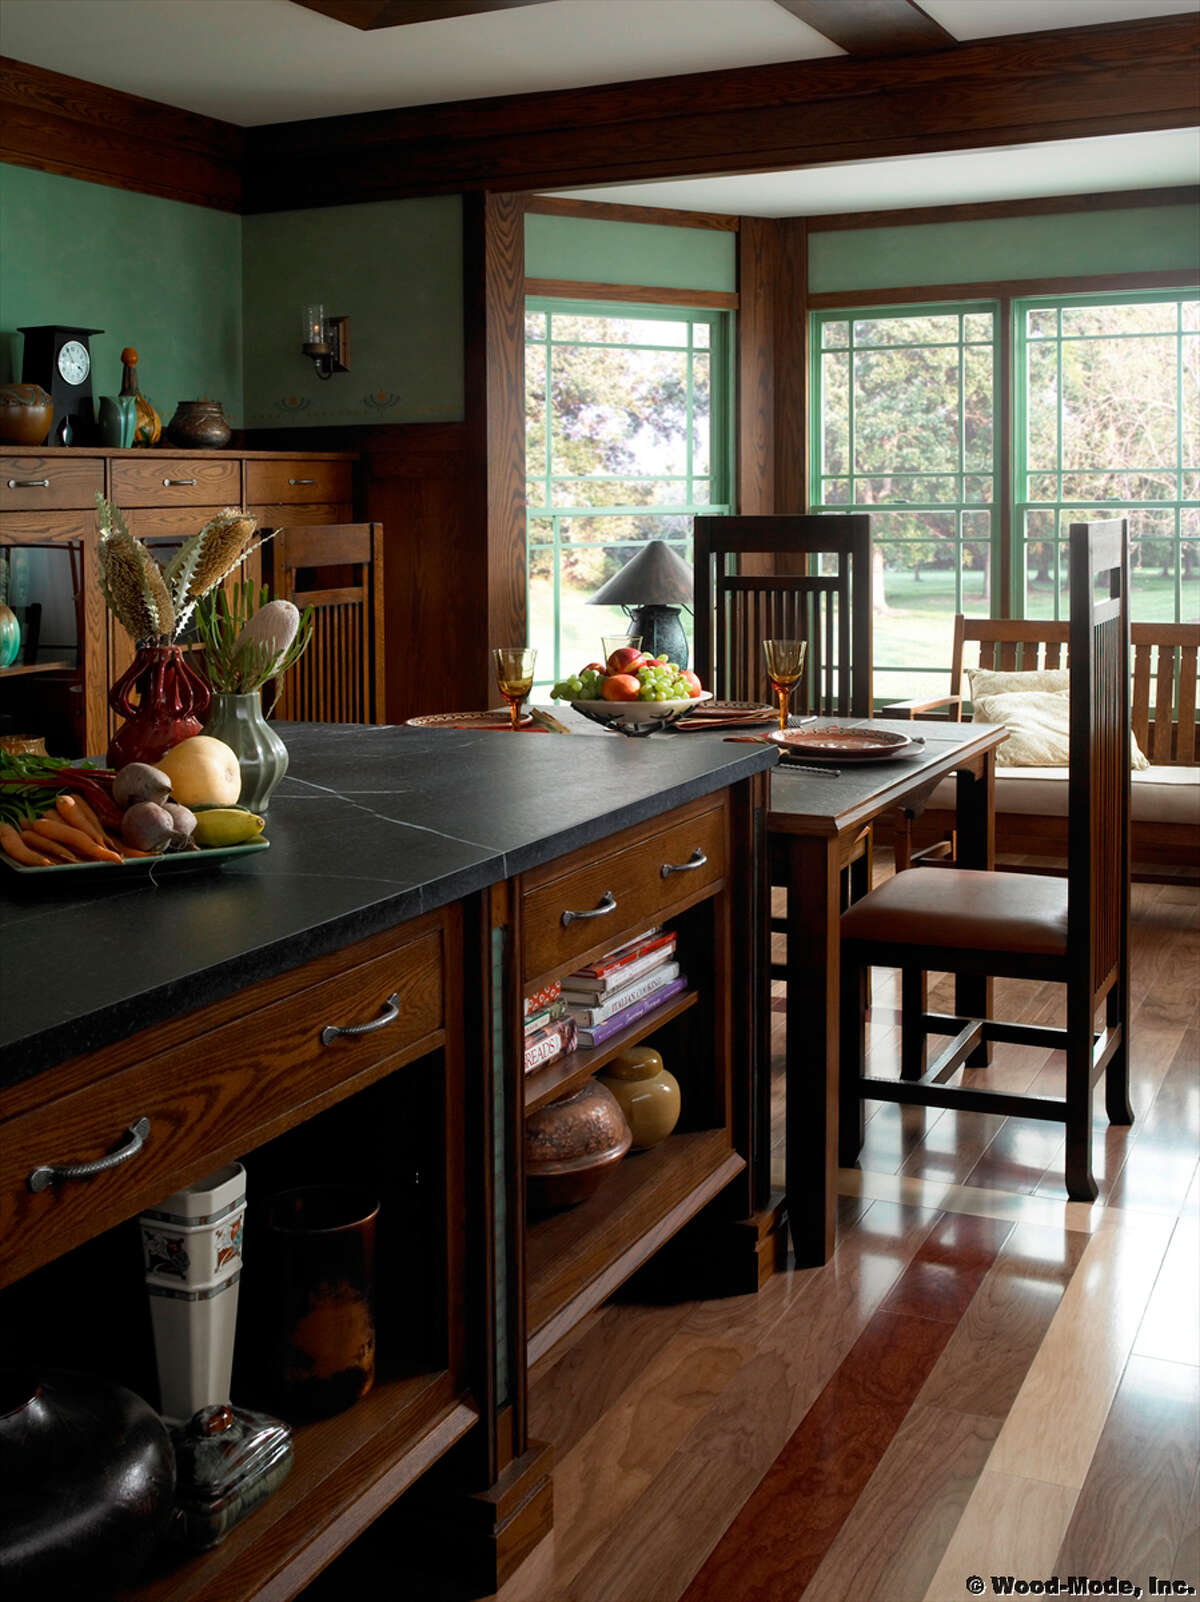 Paul Perry Kitchens , located in Glenville, specializes in kitchen design, cabinetry and countertops. Visit web site.